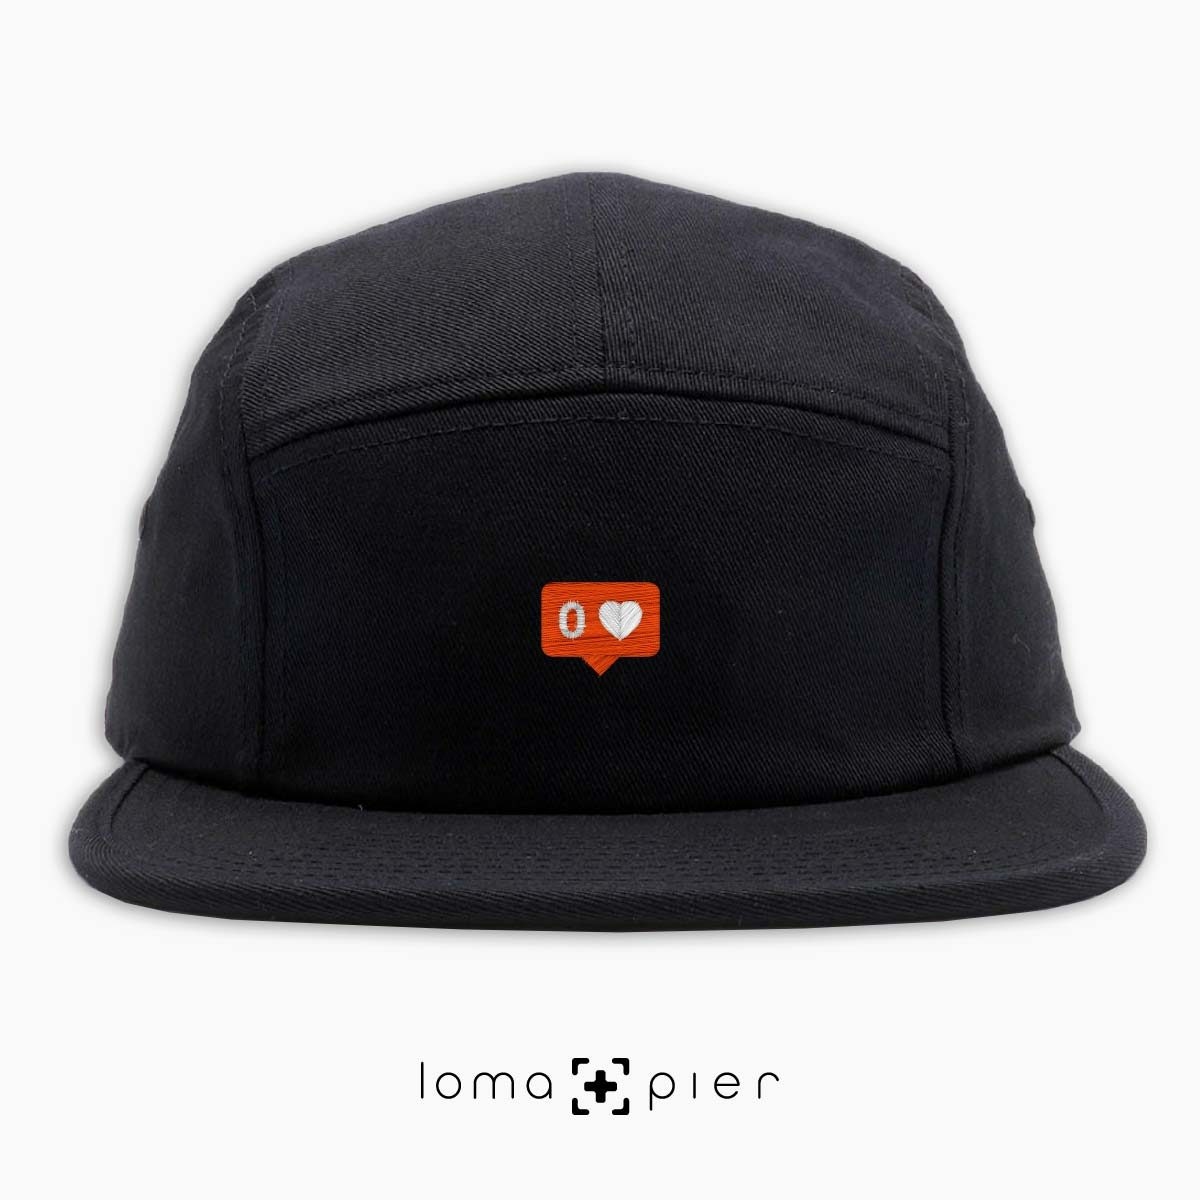 NO LOVE icon 5-panel hat in black by loma+pier hat store